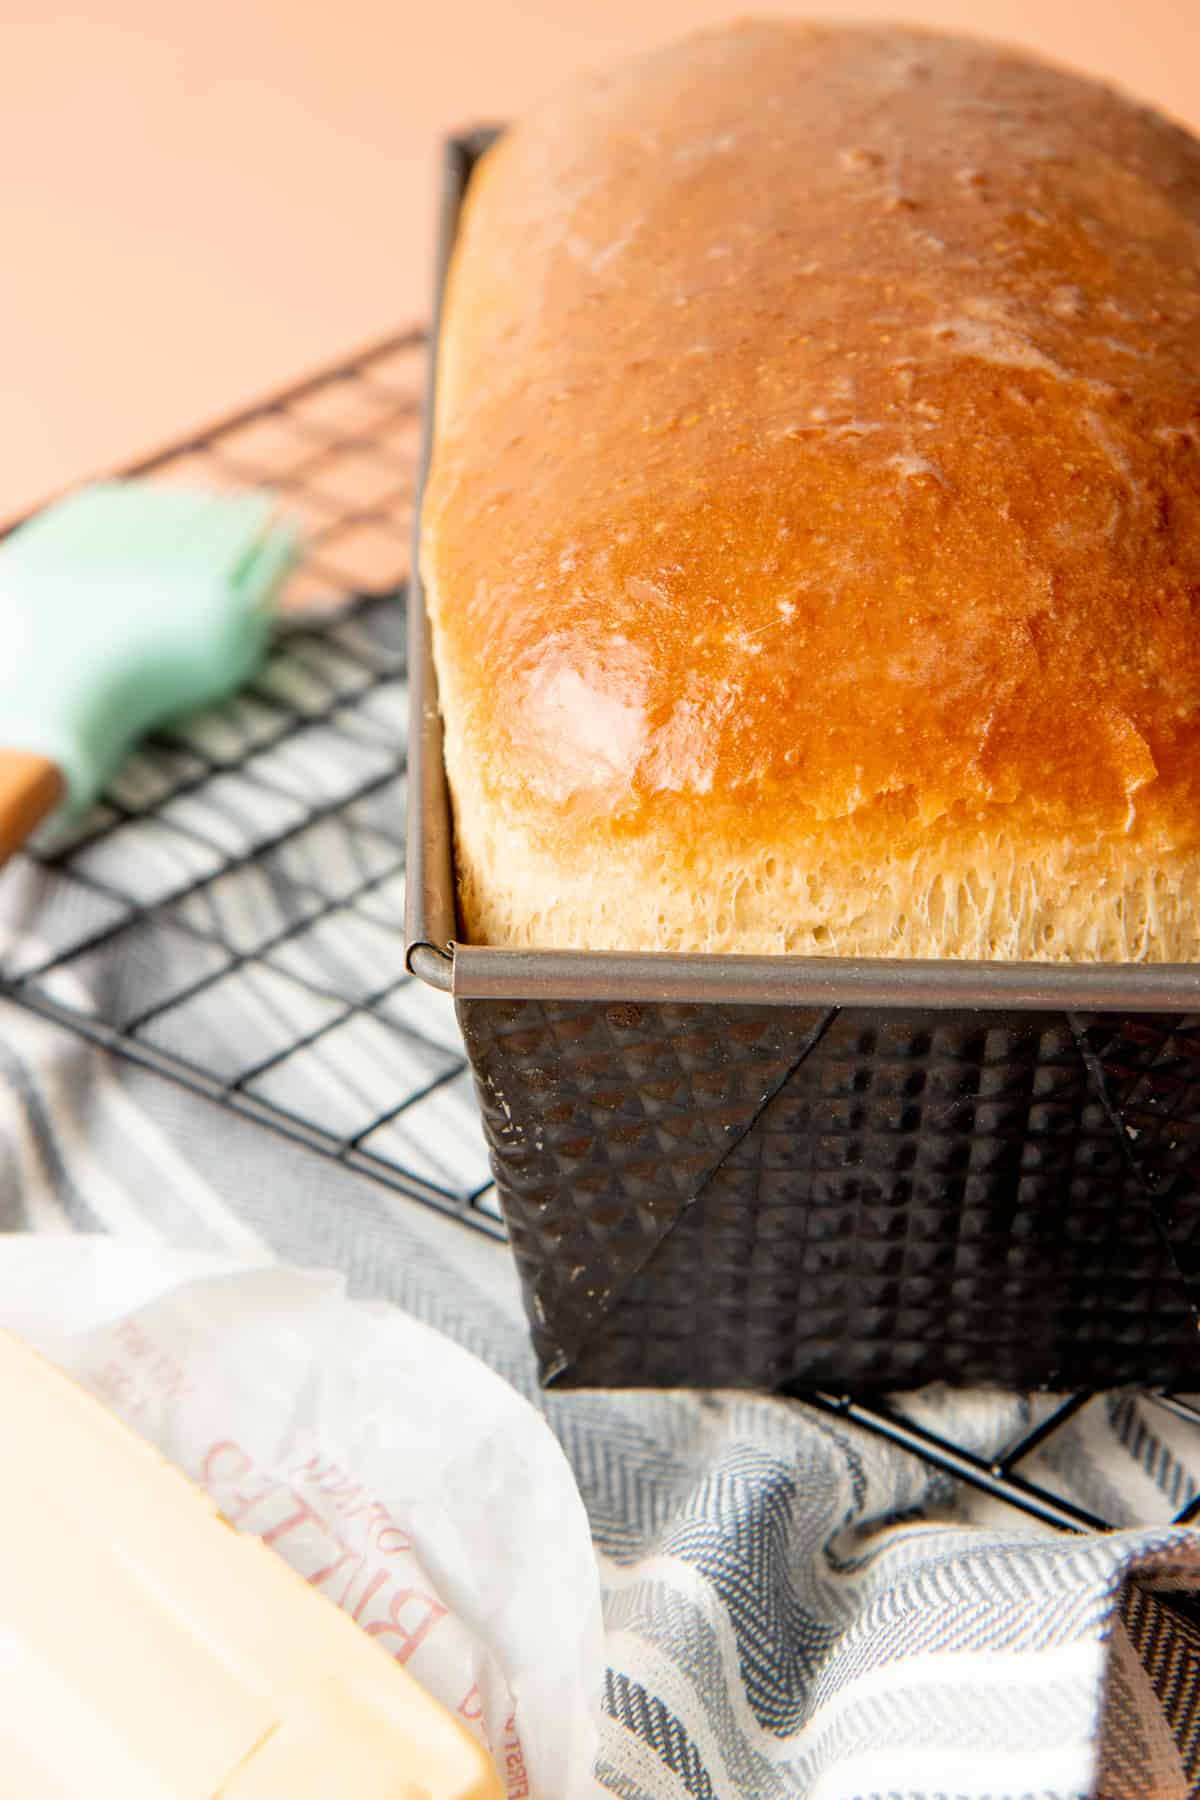 A baked loaf of bread sits in a loaf pan on a wire rack.